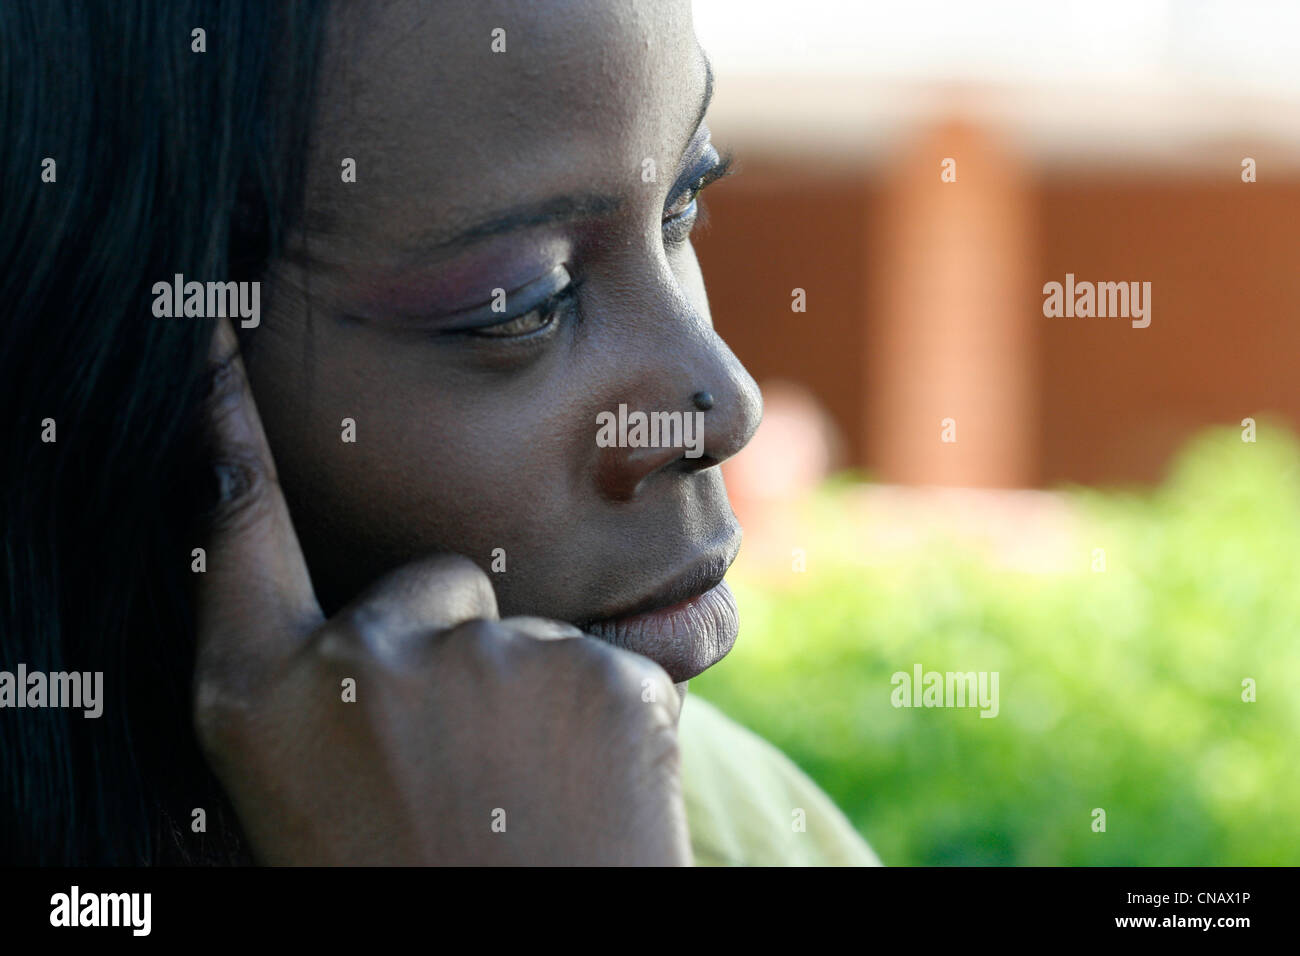 A young African woman looking thoughtful - Stock Image